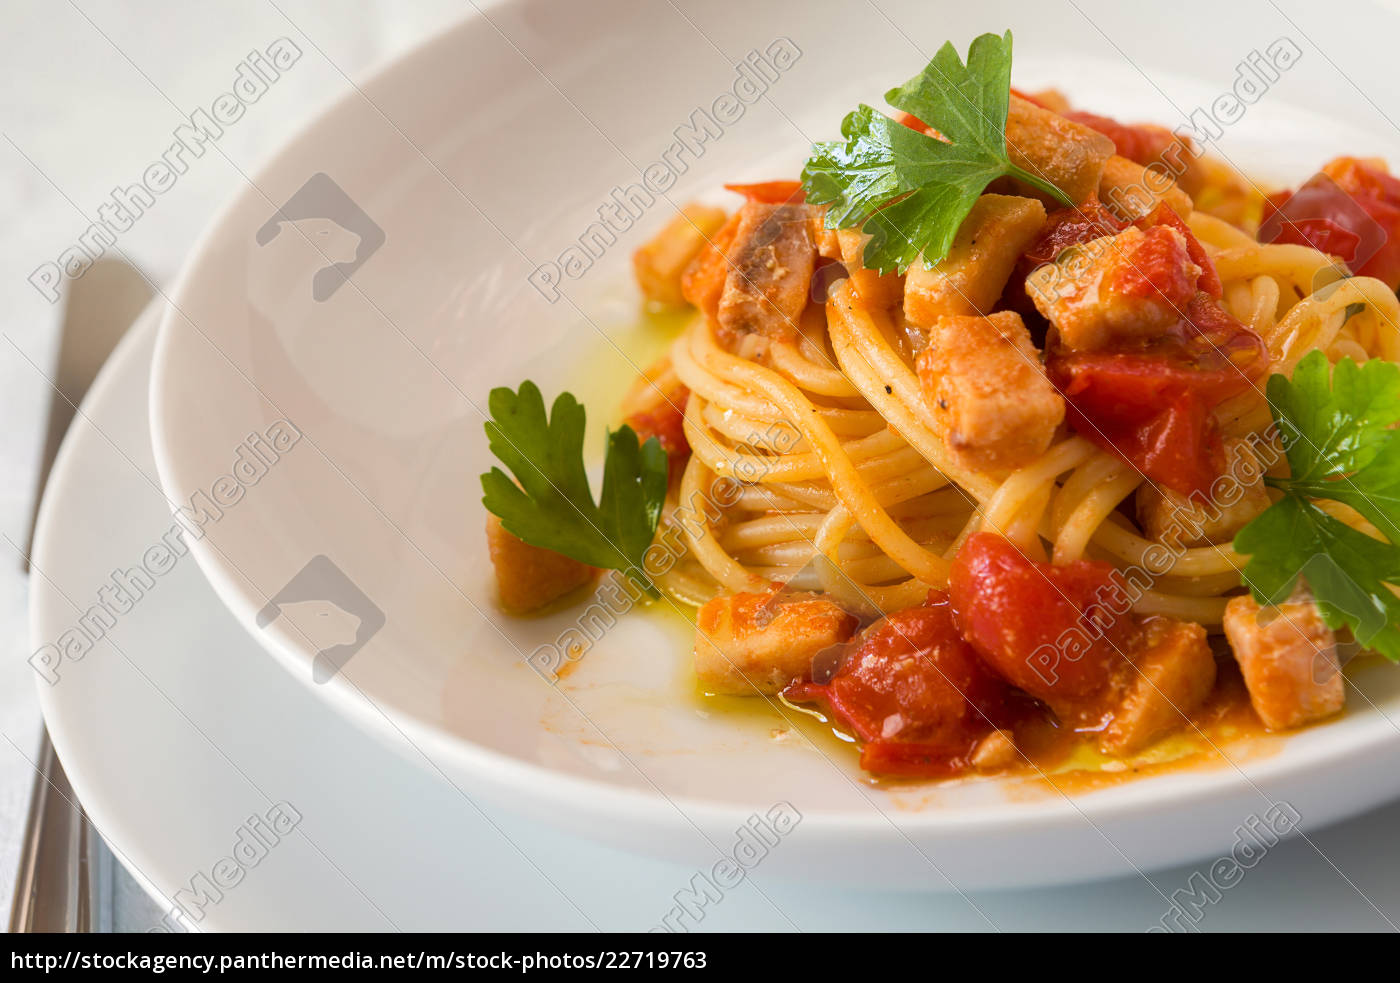 spaghetti, with, fish, and, little, tomatoes - 22719763